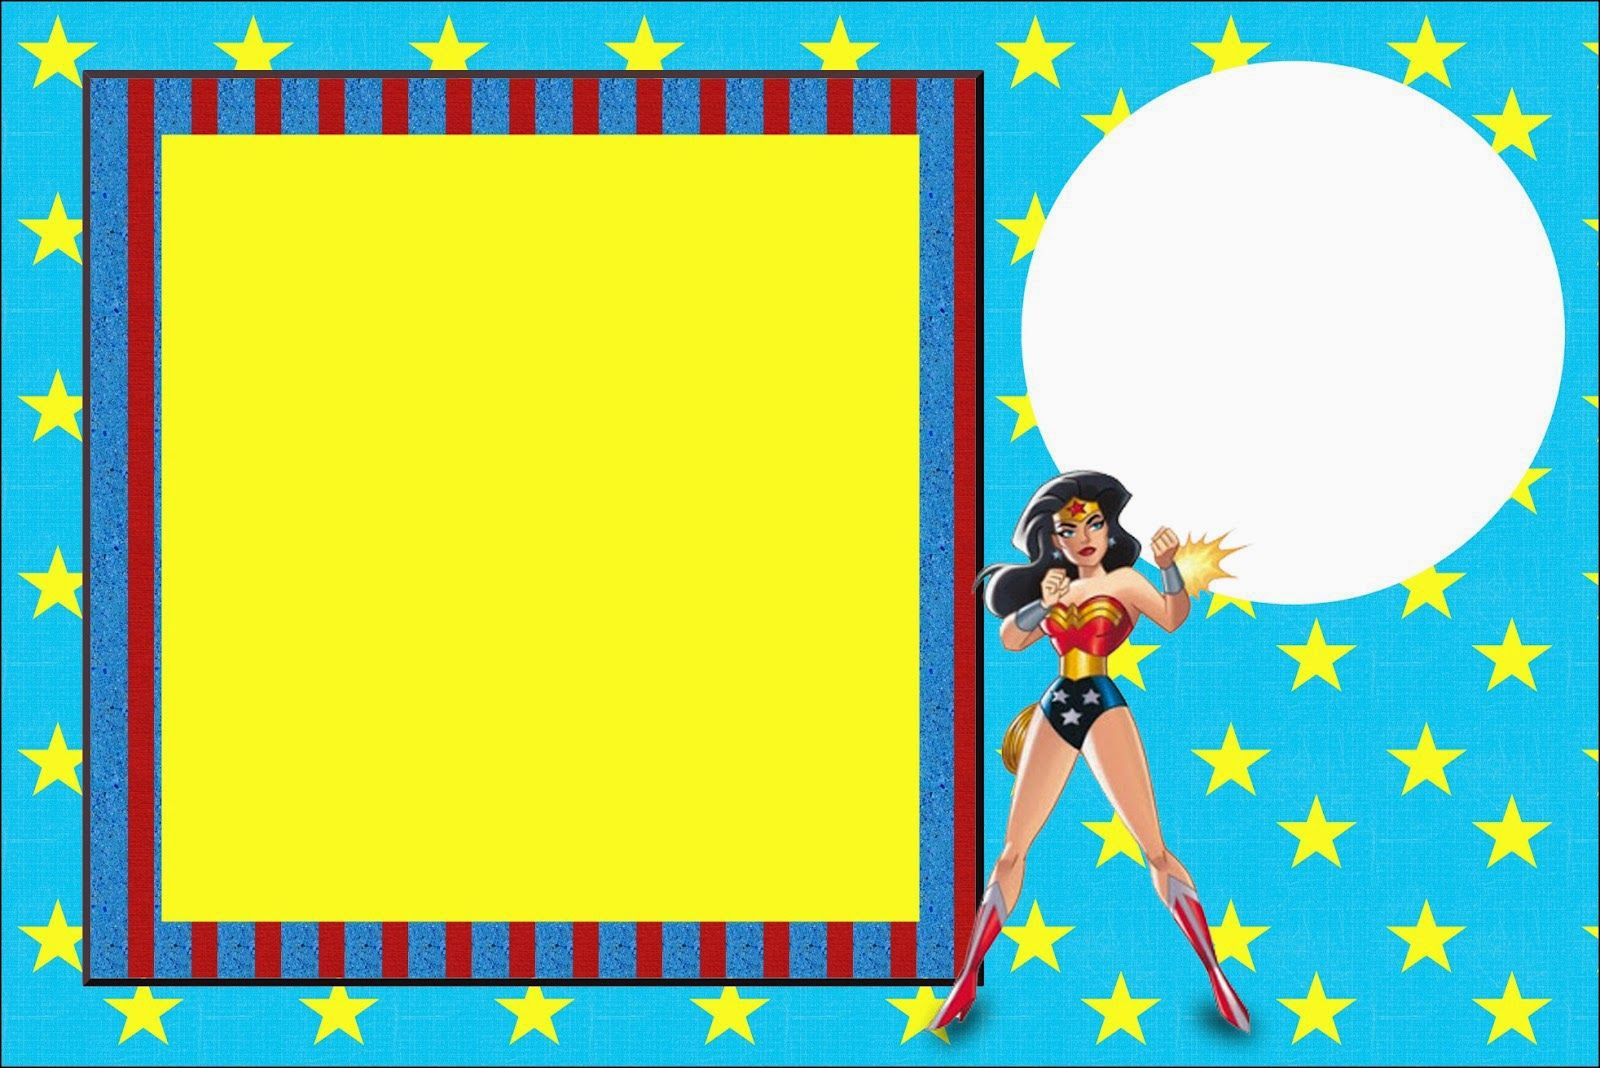 Wonder Woman Free Printable Invitations Labels Or Cards